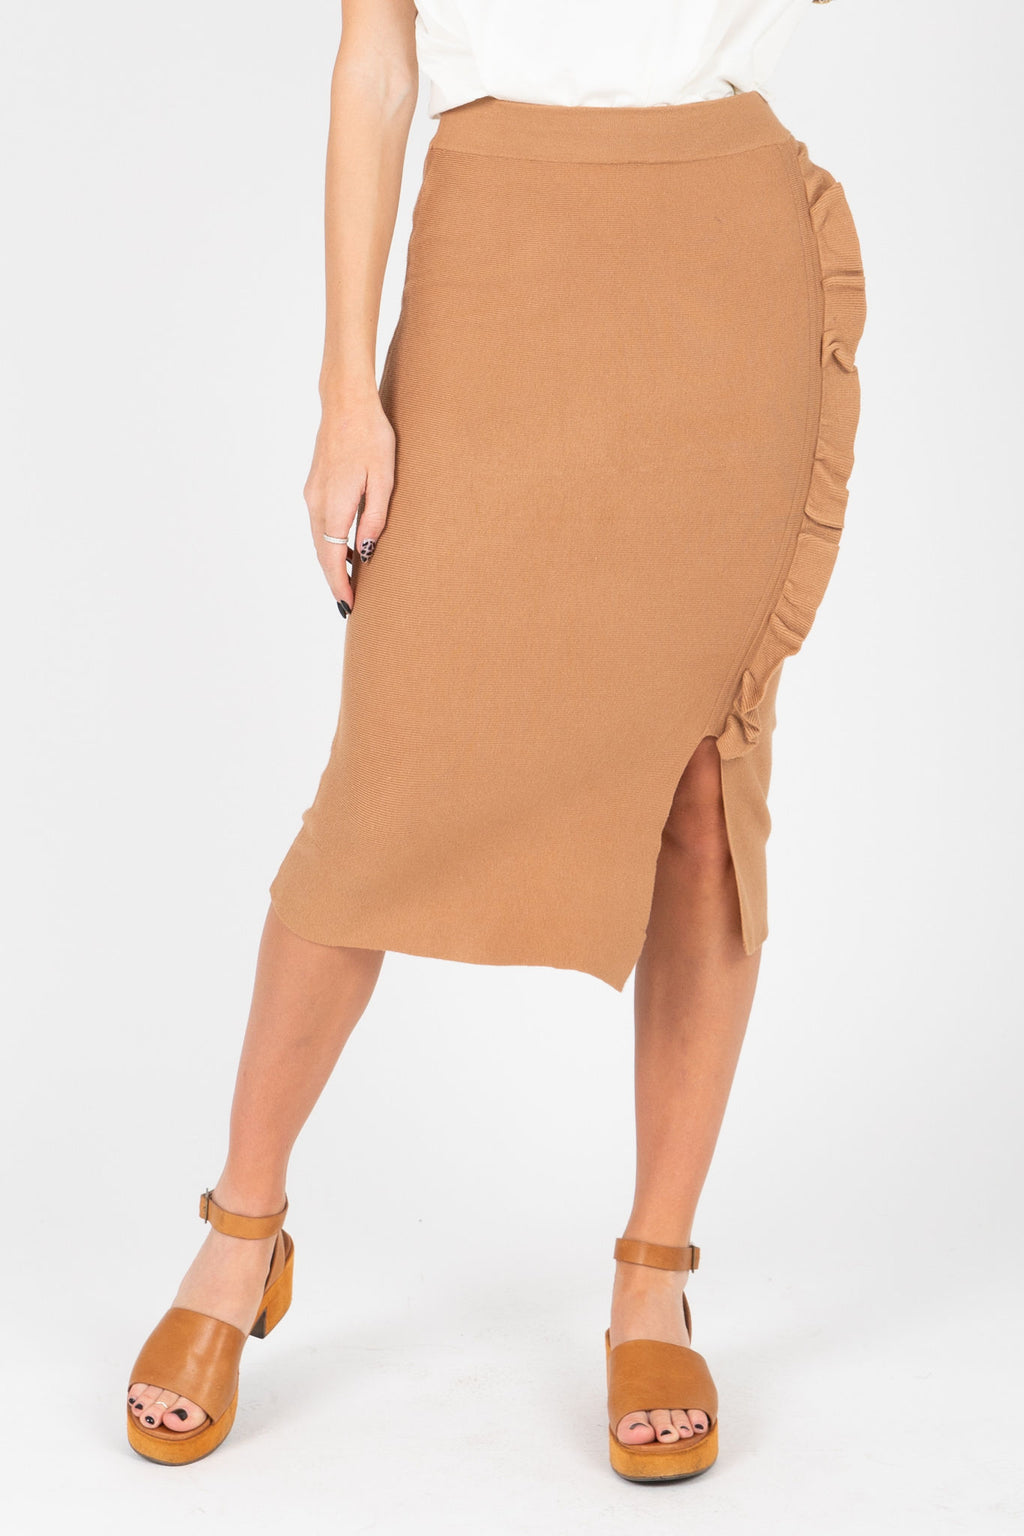 The Cyrus Ruffle Detail Knit Skirt in Tan, studio shoot; front view